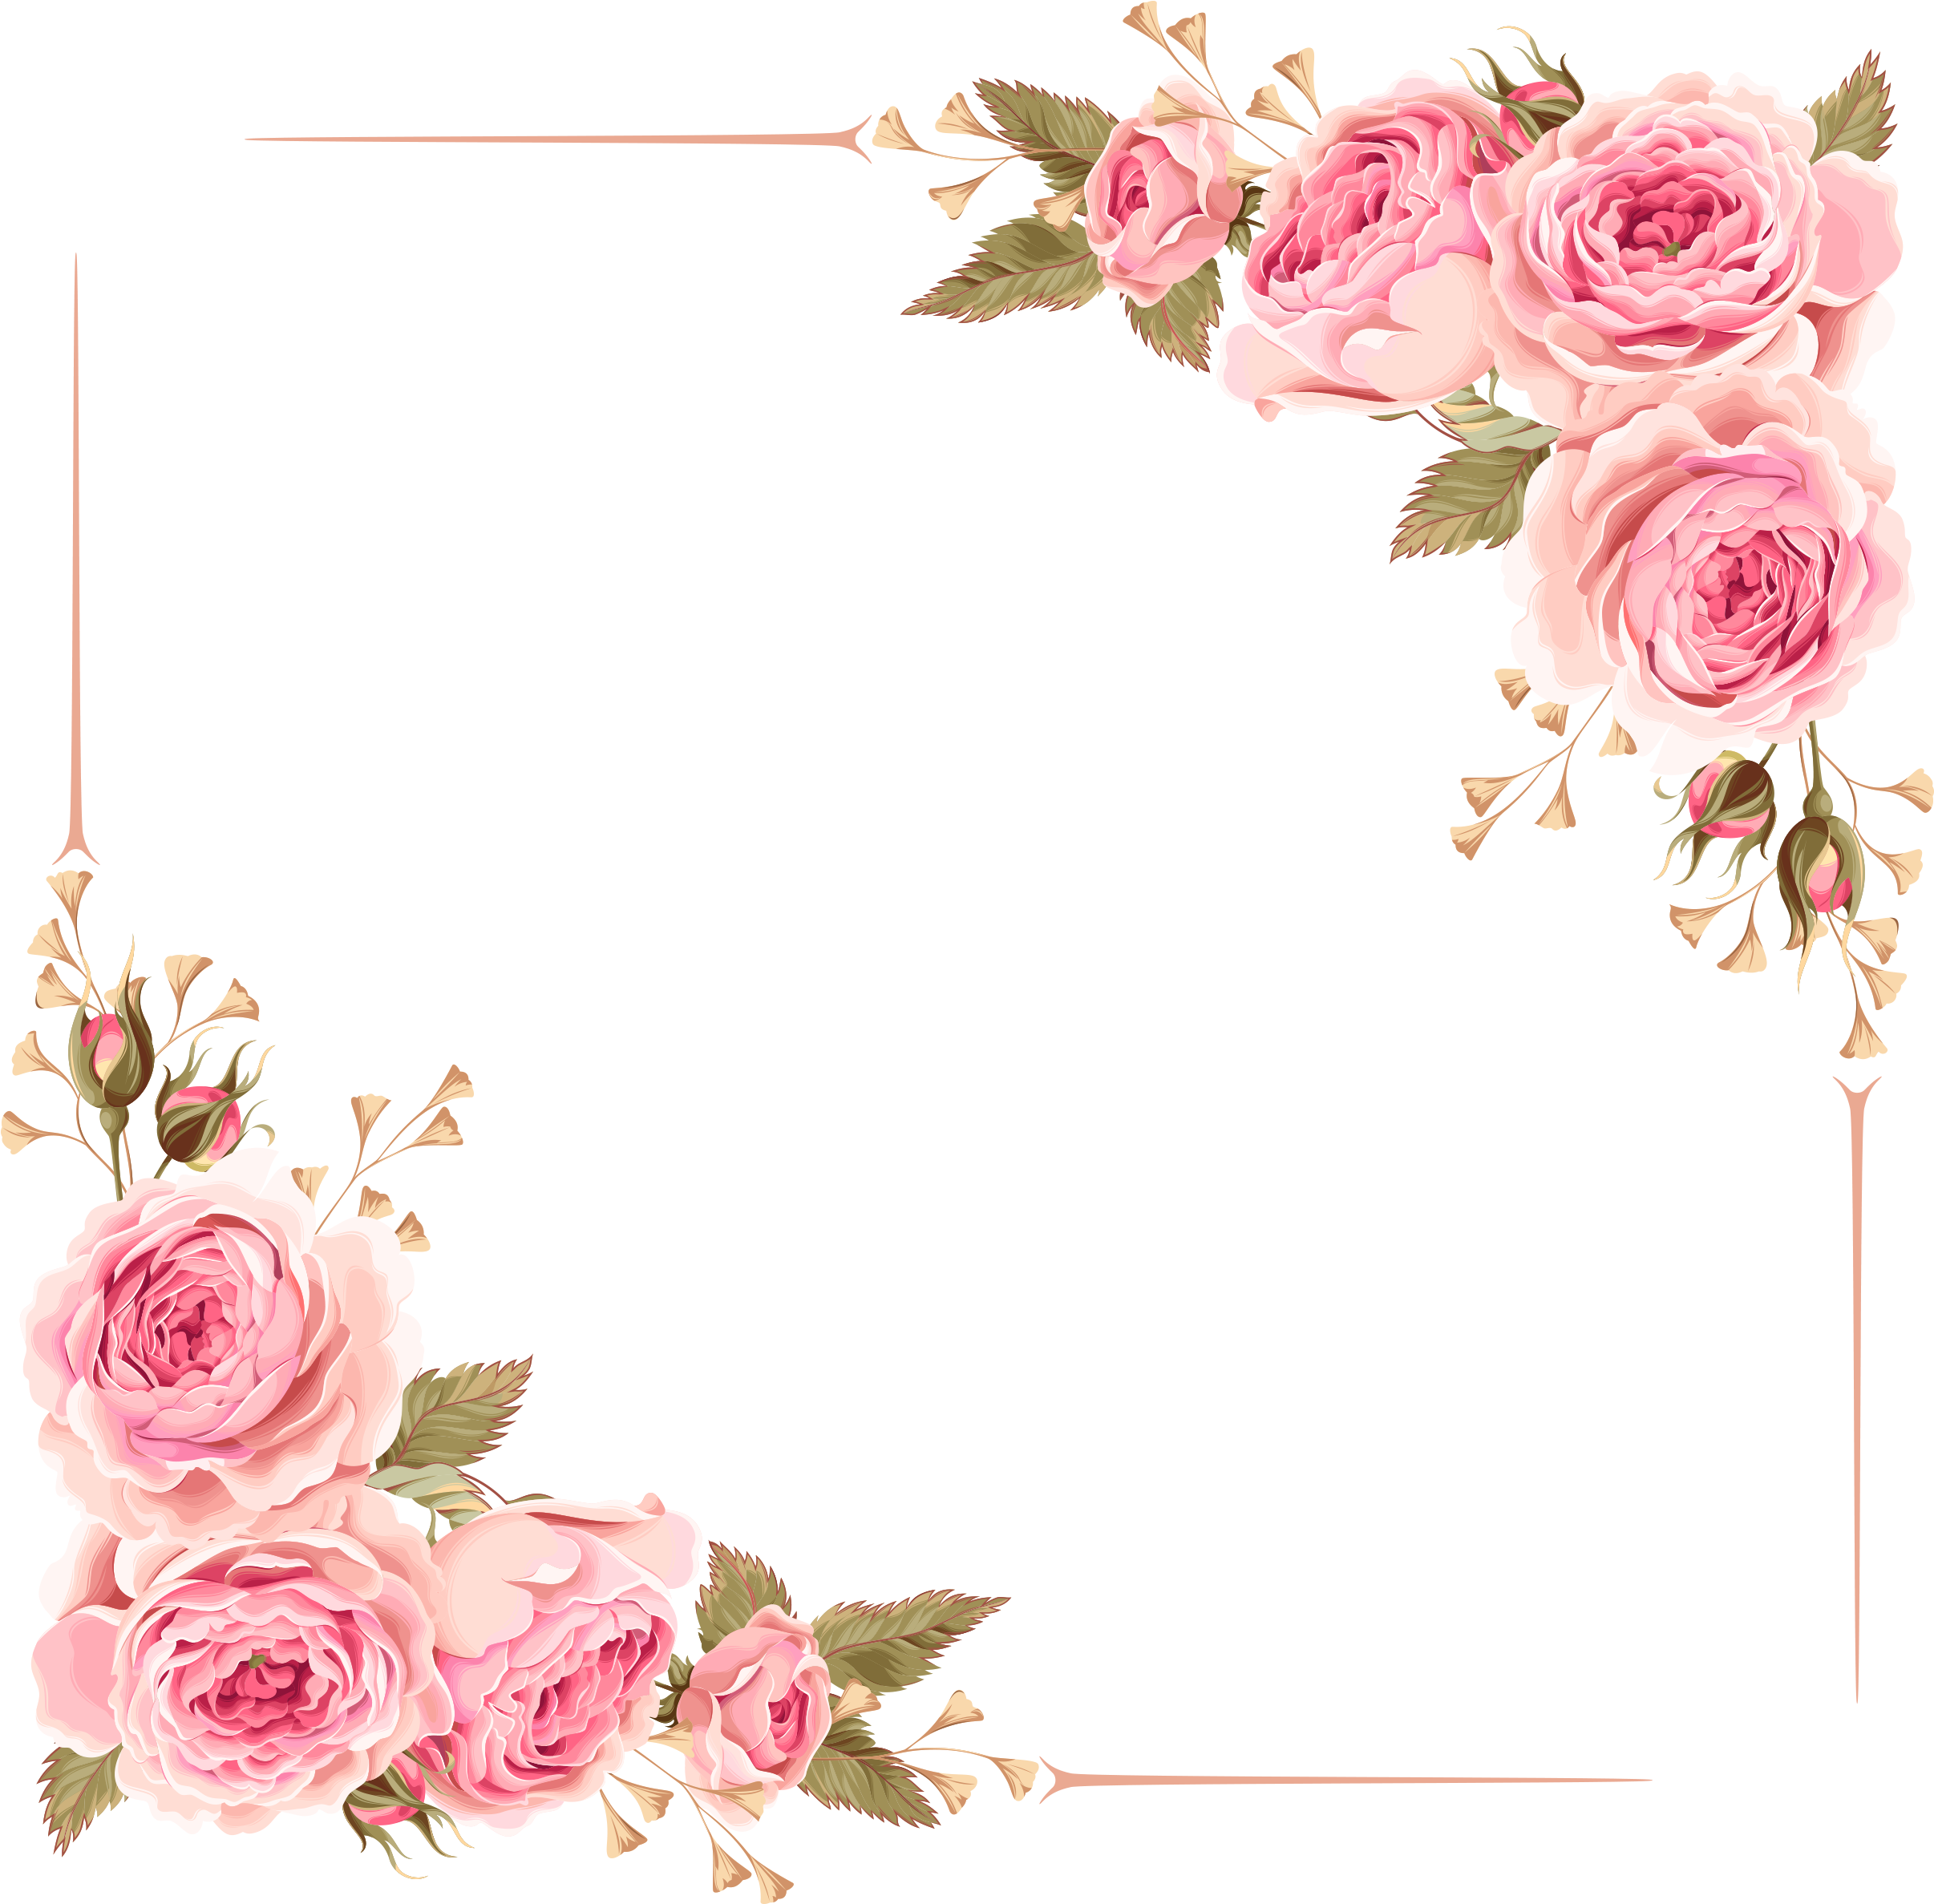 Rose Border Wedding Invitation Flower Borders Png Download Transparent Png Image In 2020 Floral Border Design Clip Art Borders Rose Frame